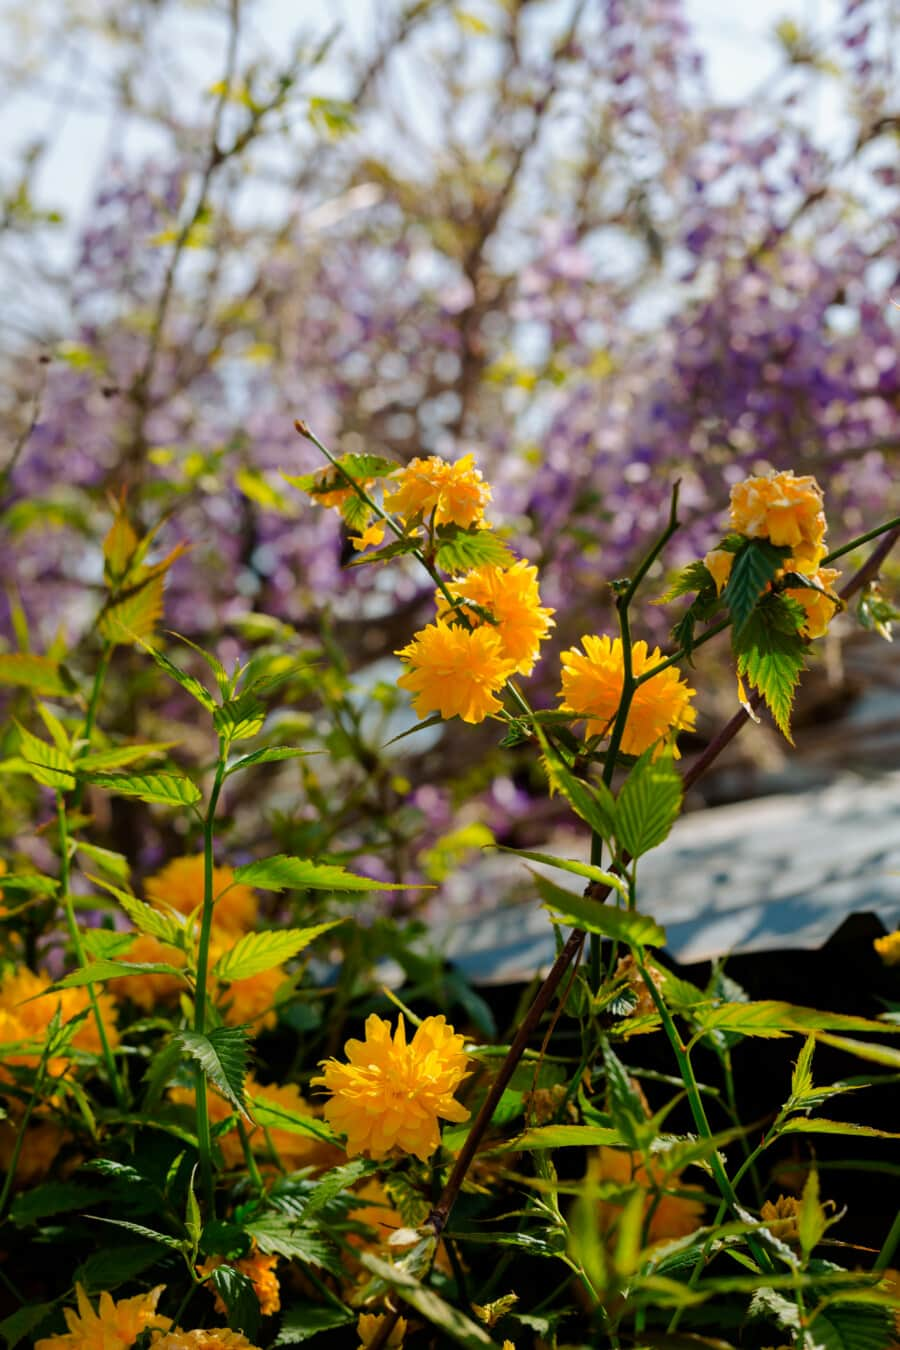 orange yellow, shrub, spring time, branches, flowers, yellow, leaf, herb, flower, nature